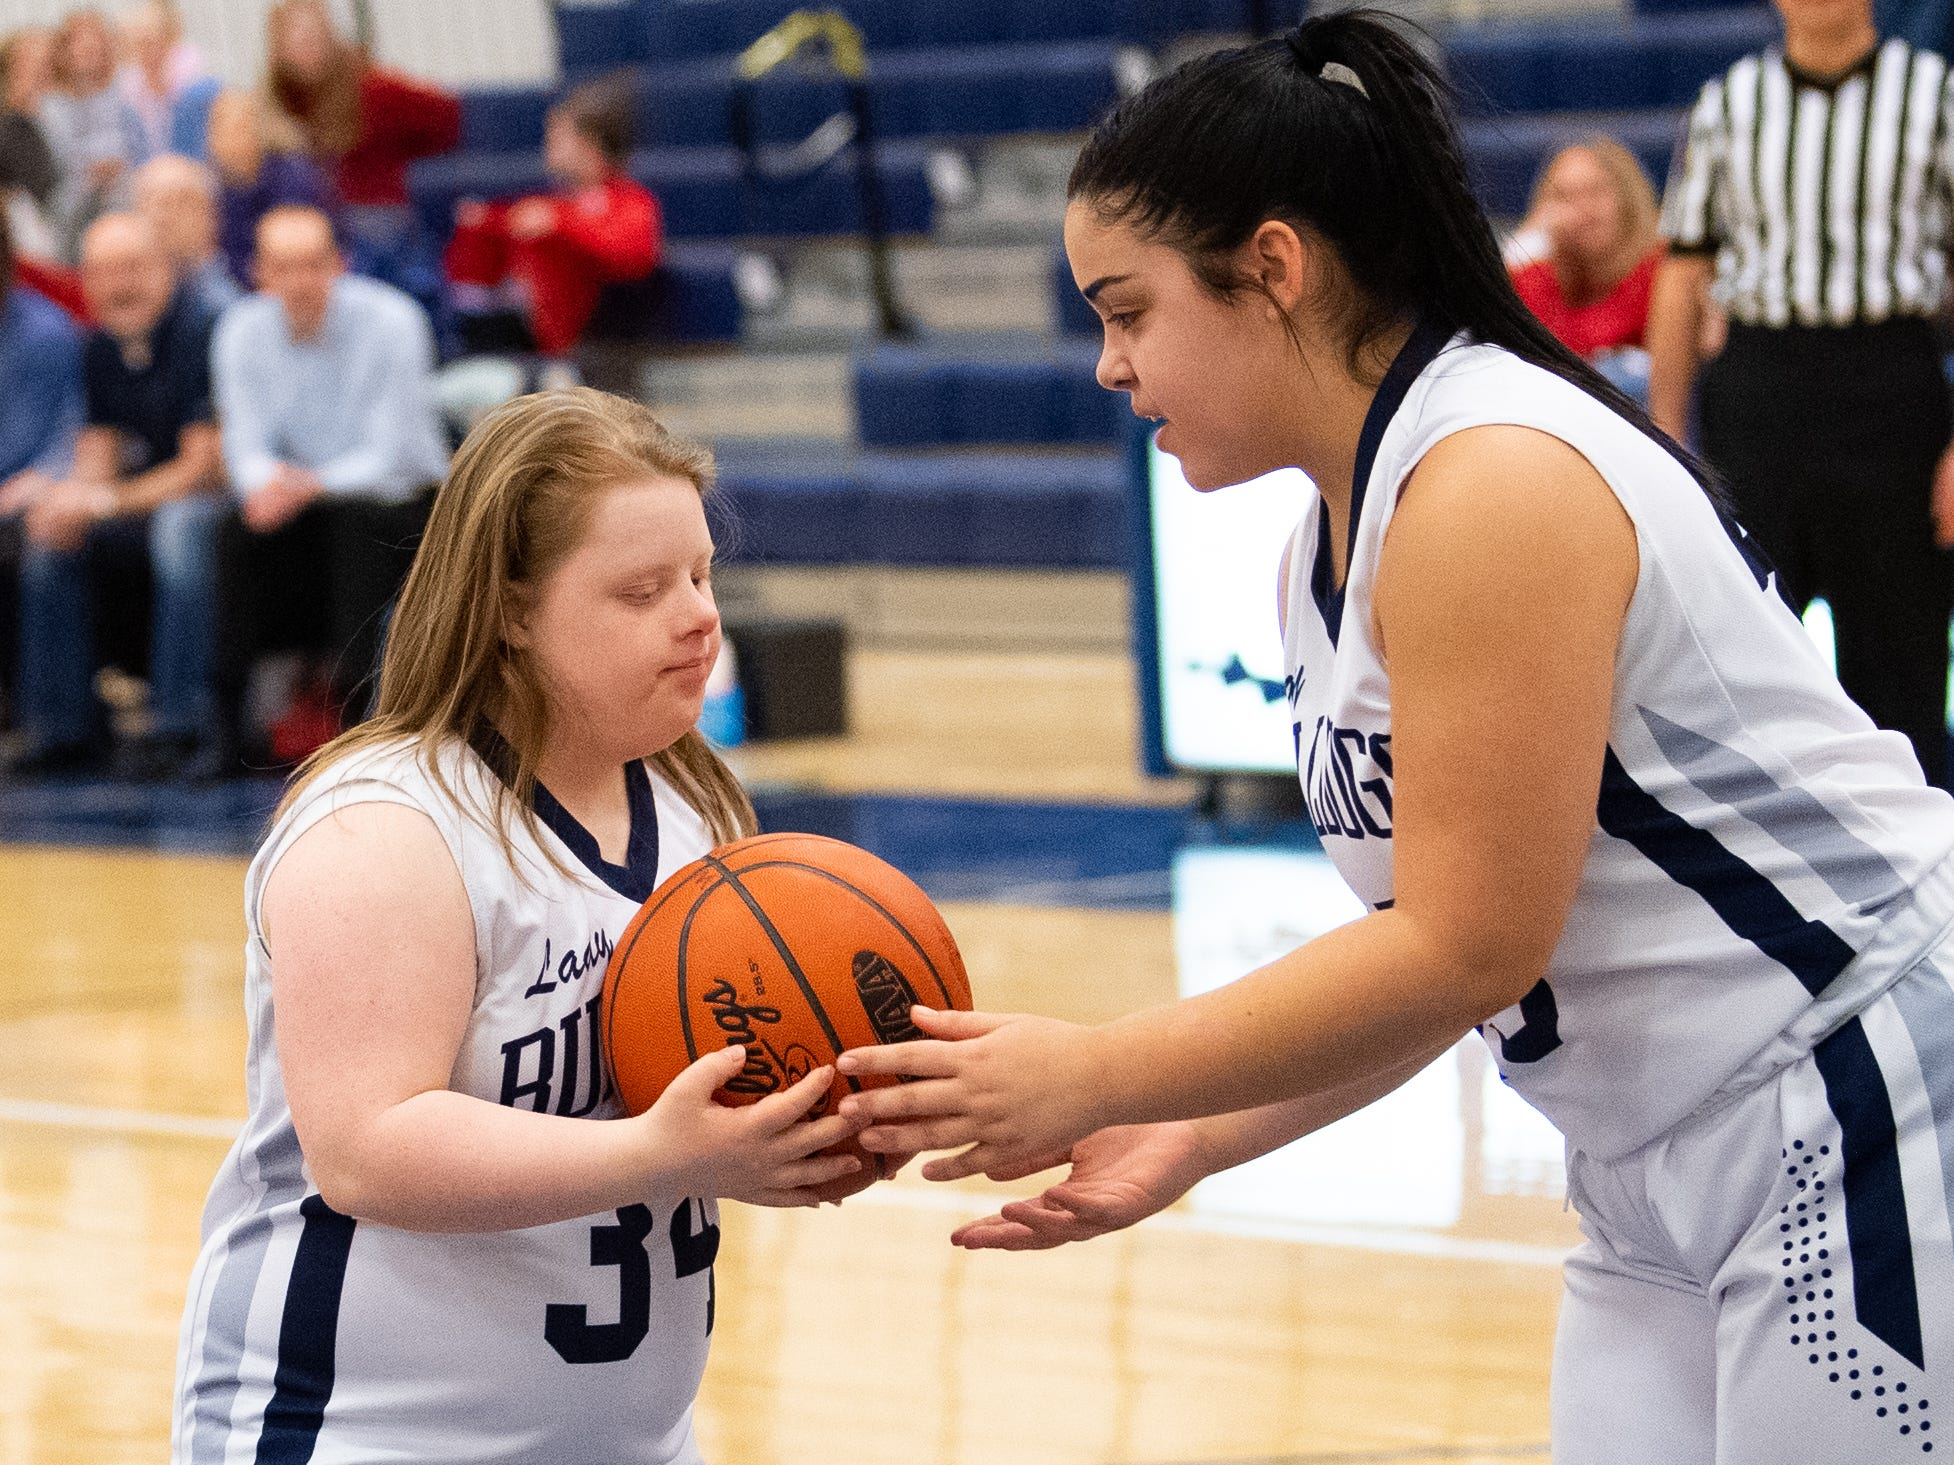 Jada Torres (45) hands Katie Kniery (34) the ball so she can take the shot, February 1, 2019.